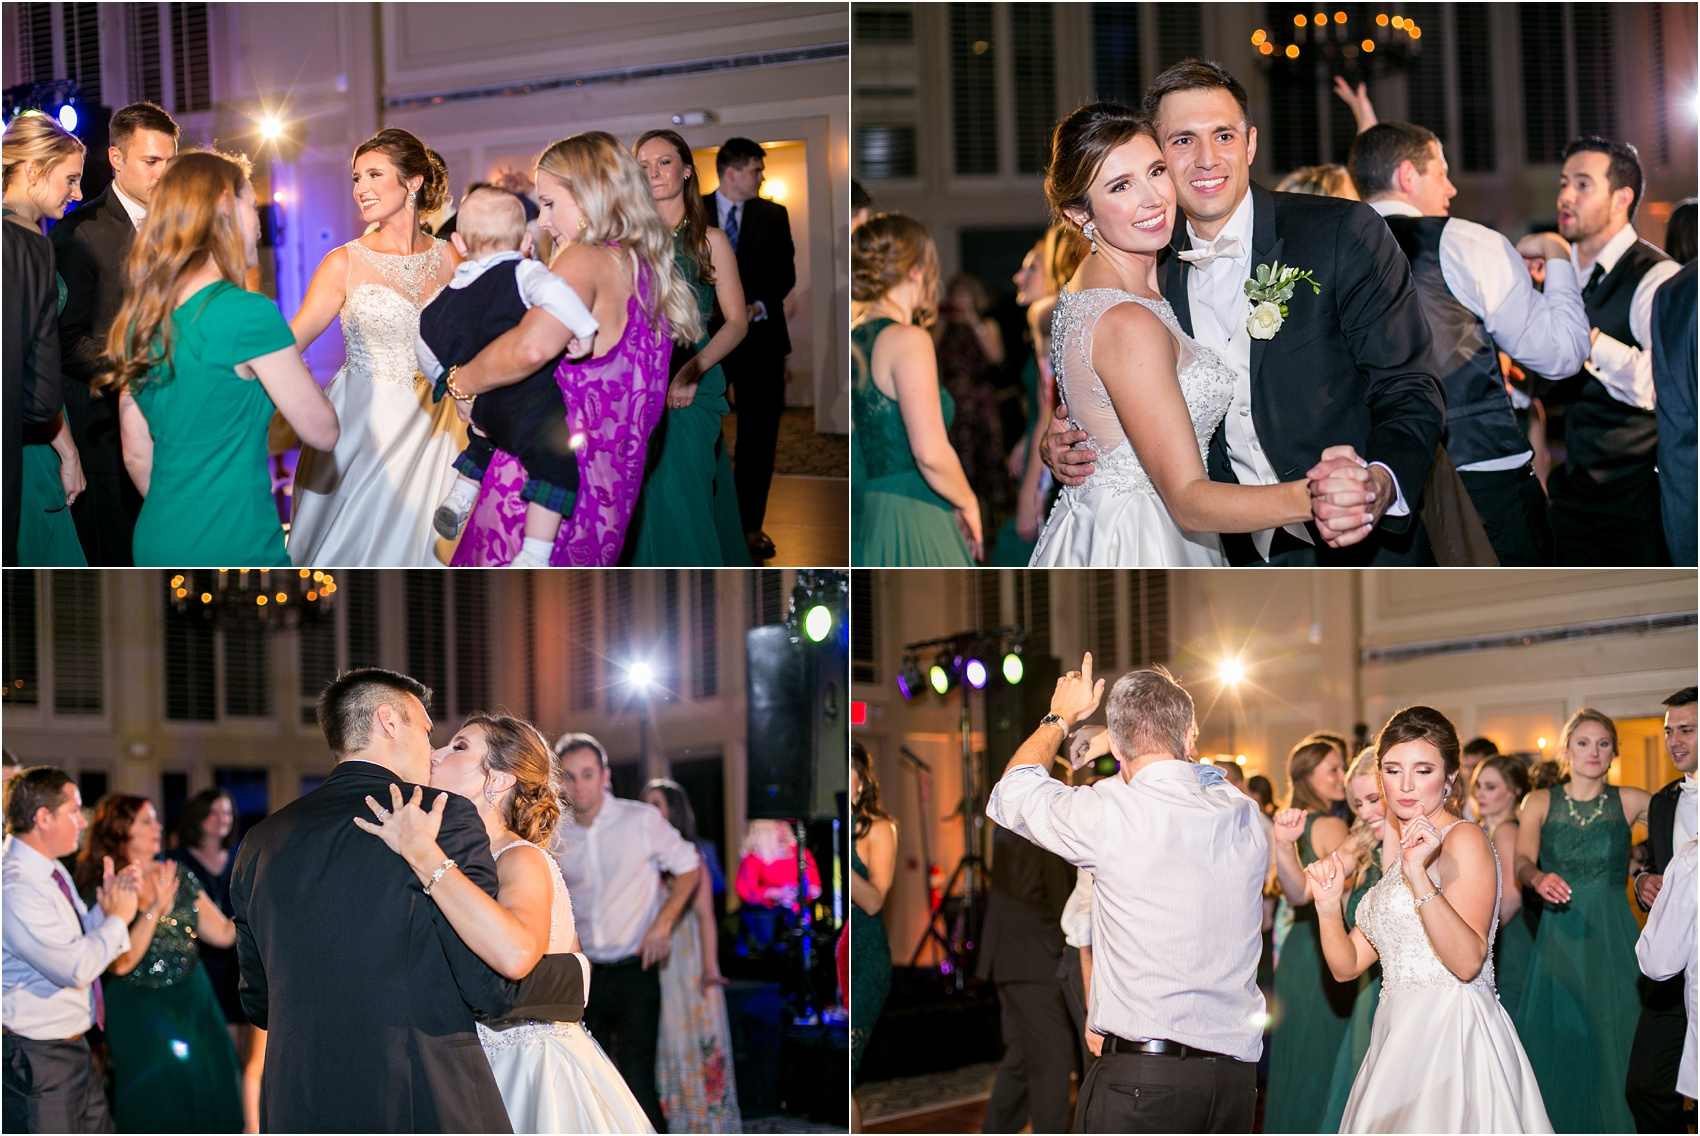 Savannah Eve Photography- Bottiglion-Scope Wedding- Sneak Peek-106.jpg